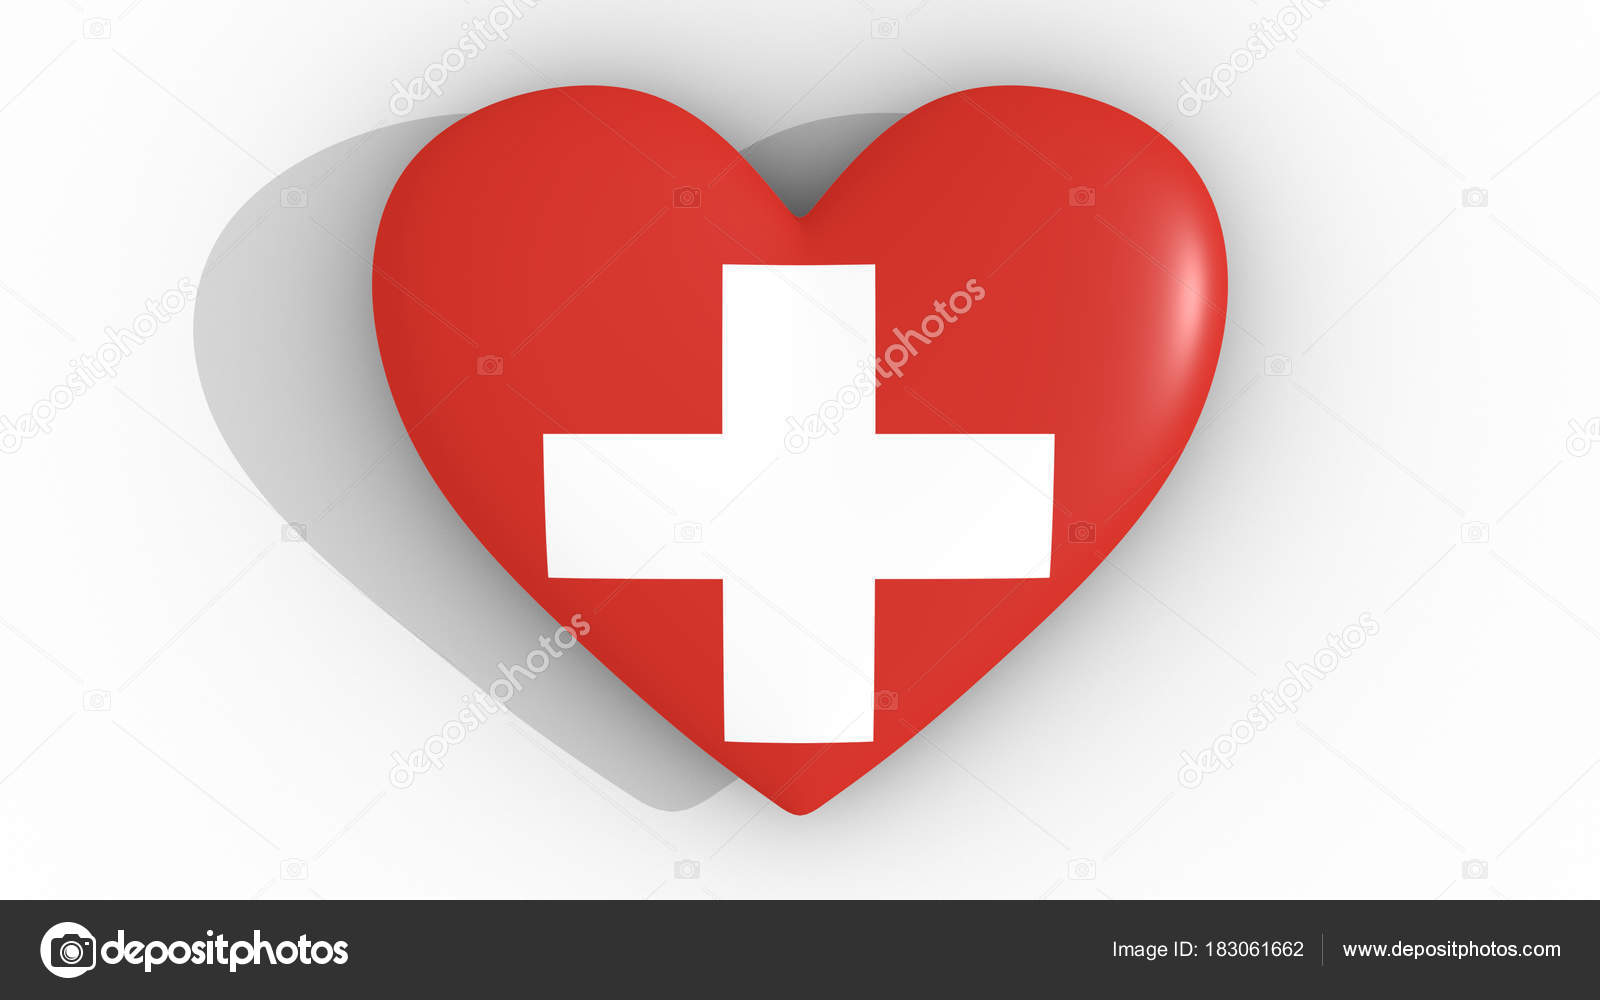 Heart In The Colors Of Switzerland Flag On A White Background 3d